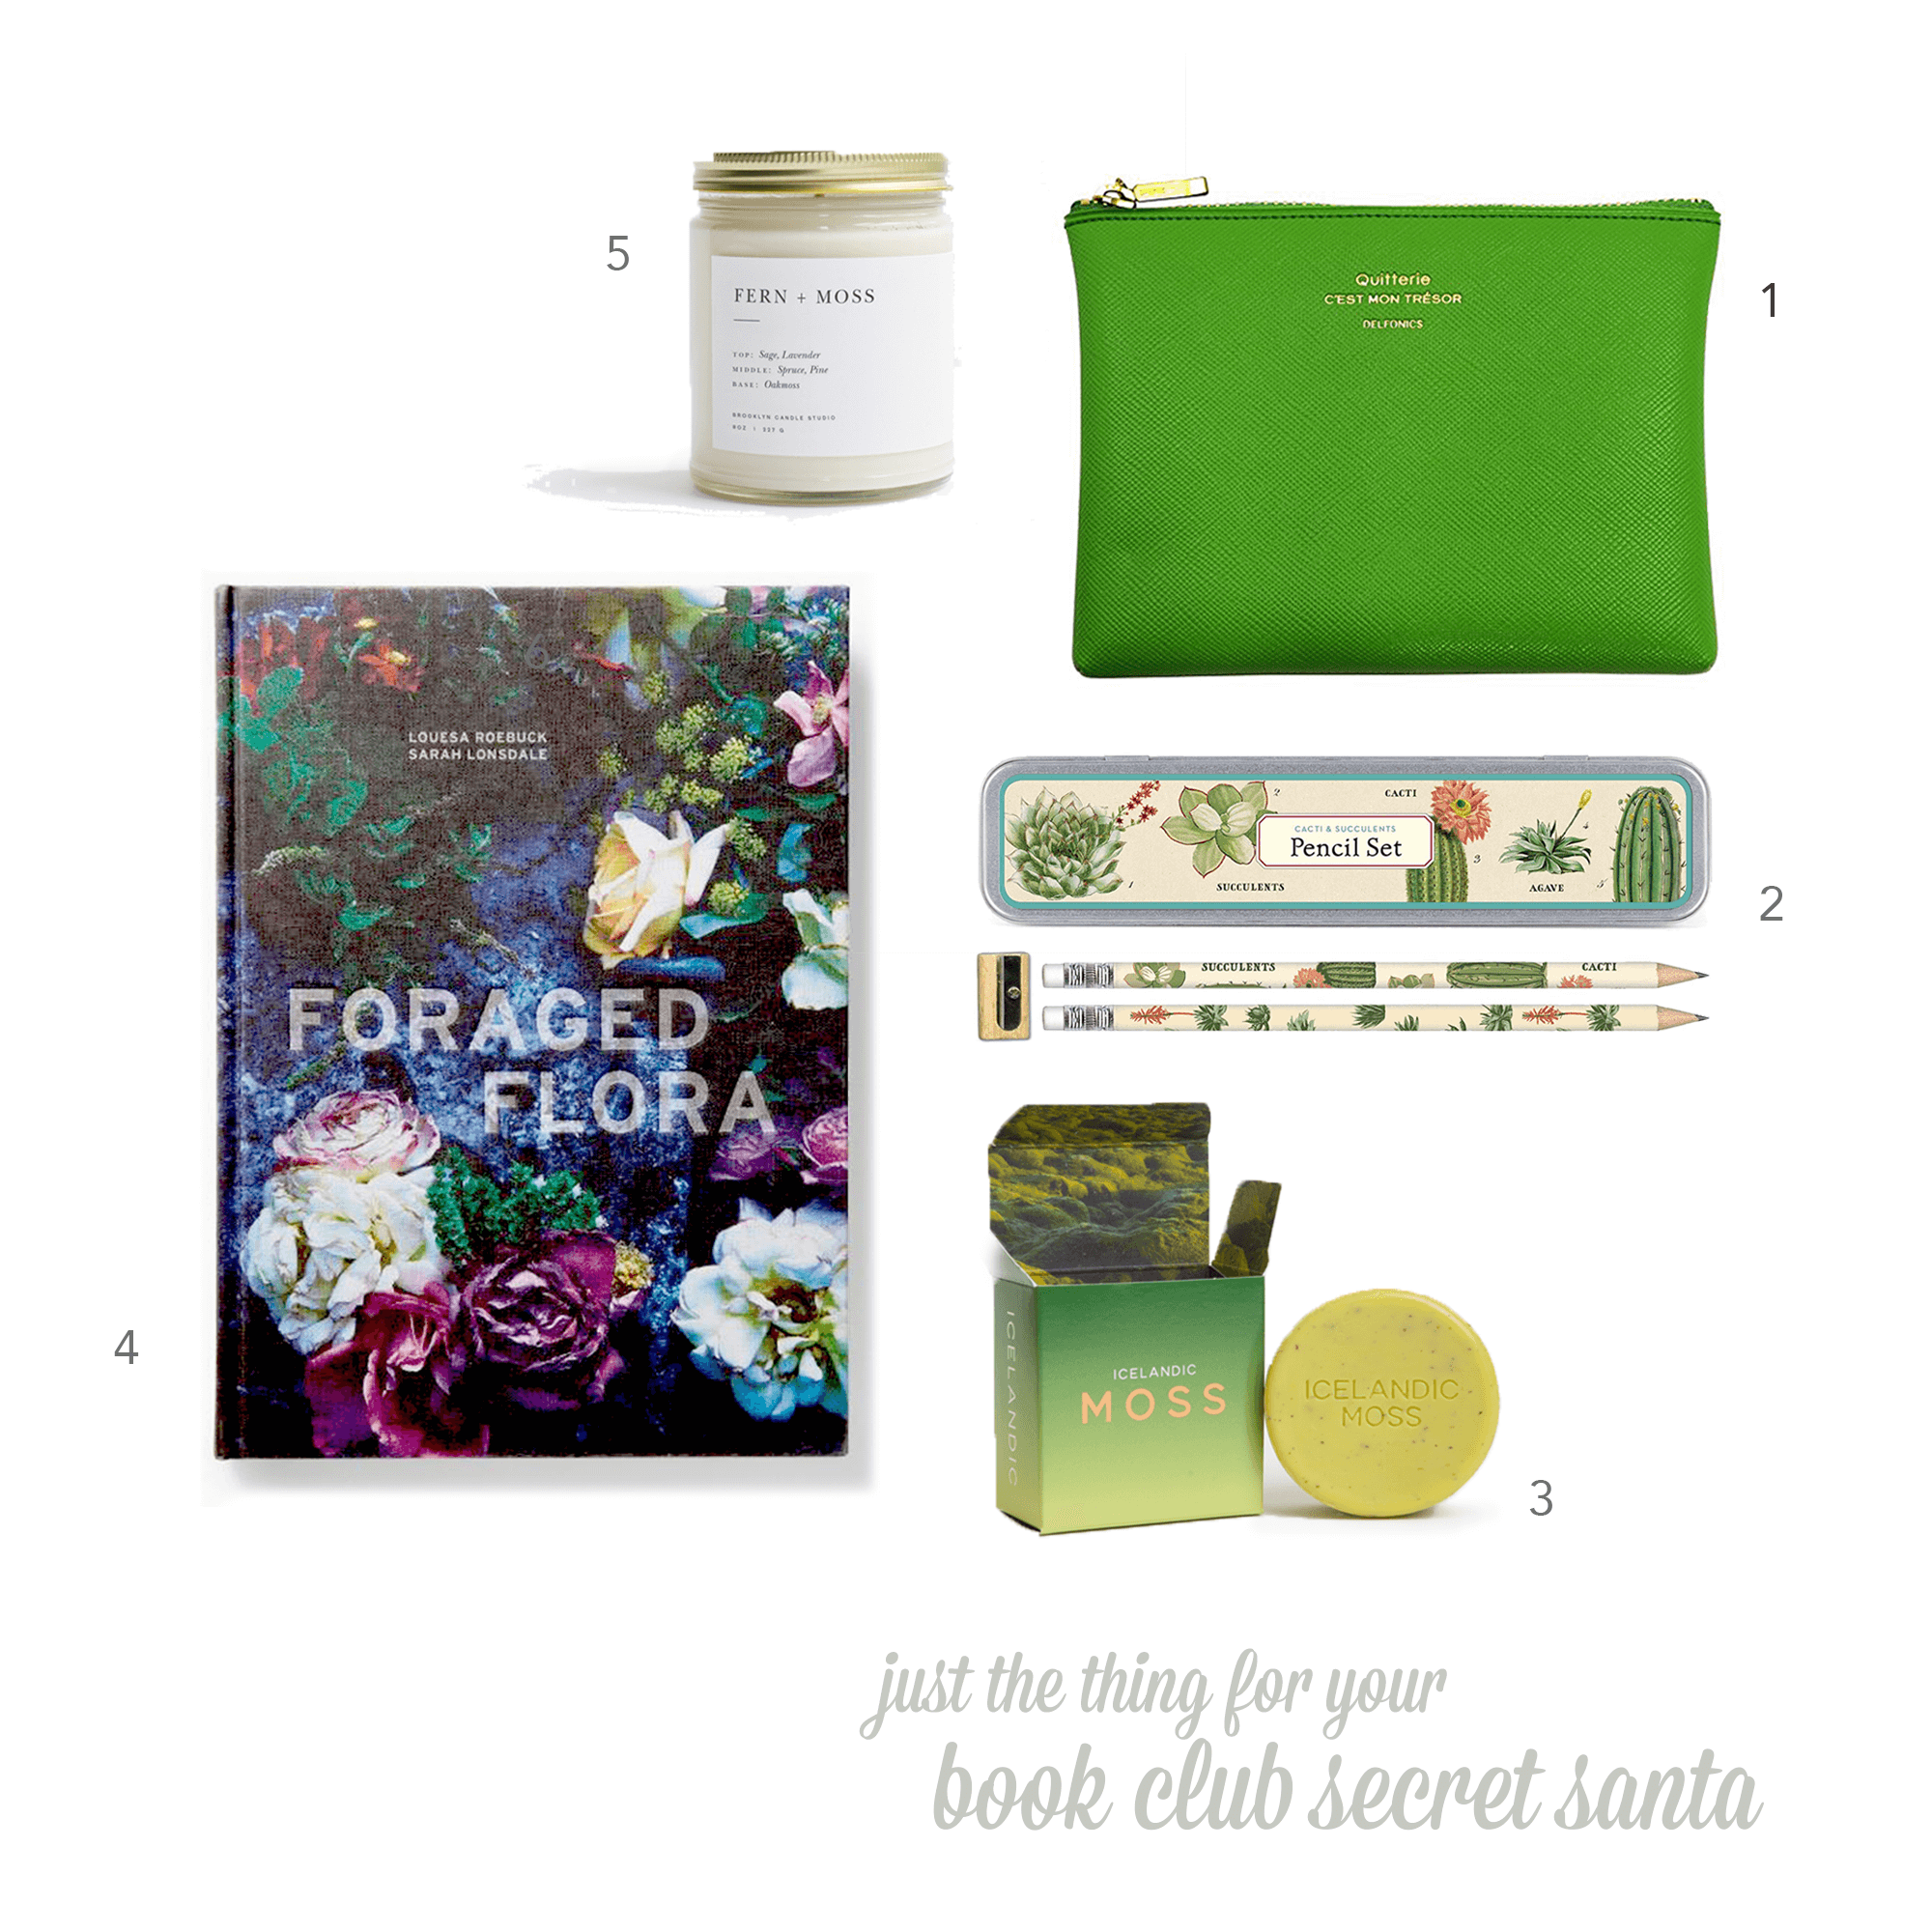 01  Delfonics    Quitterie Multifunctional Pouch ,$15*   02  Cavallini Papers & Co., Inc.  Succulents Pencil Set ,$11*   03  Kala Modern Wash    Icelandic Moss Soap , $9   04    Foraged Flora   by Louesa Roebuck, $27.96*  05  Brooklyn Candle Studio    Fern + Moss Minimalist Candle ,$24